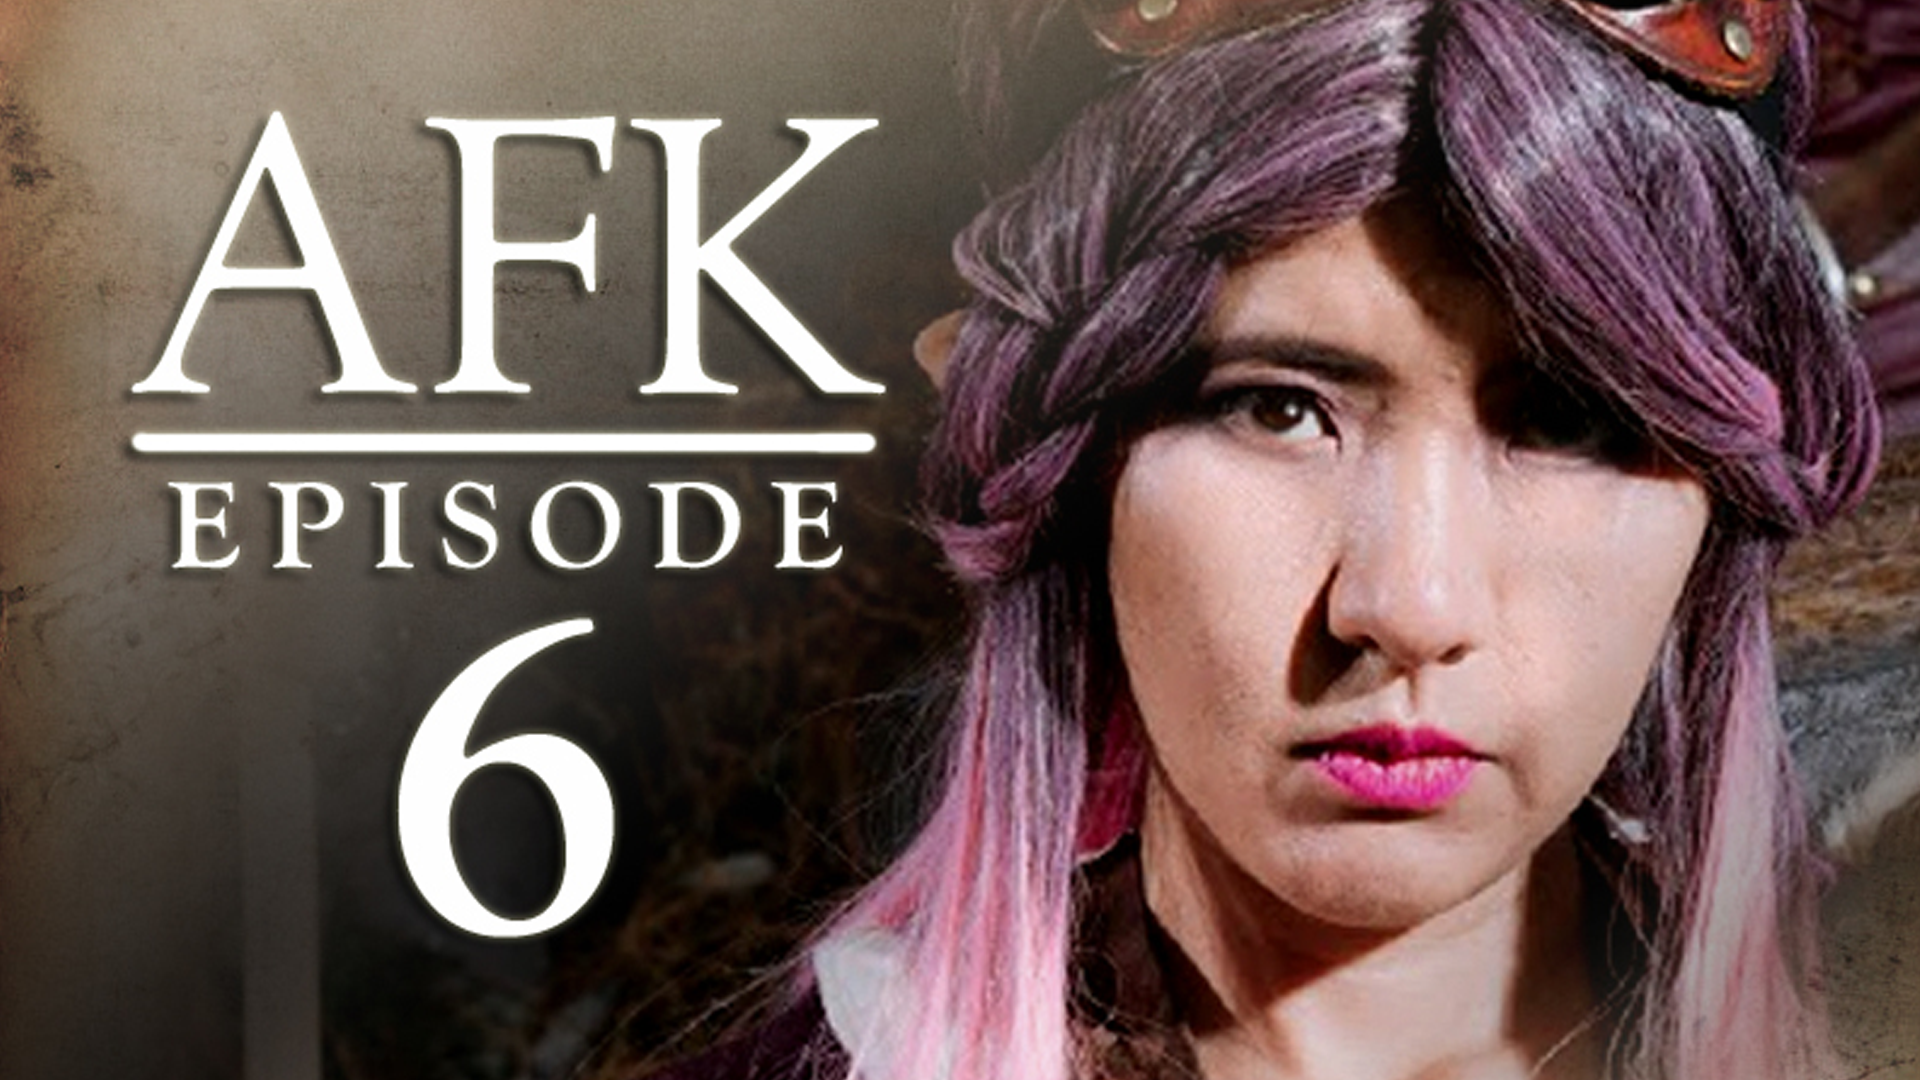 AFK Season 1 Episode 6 Inc Mob